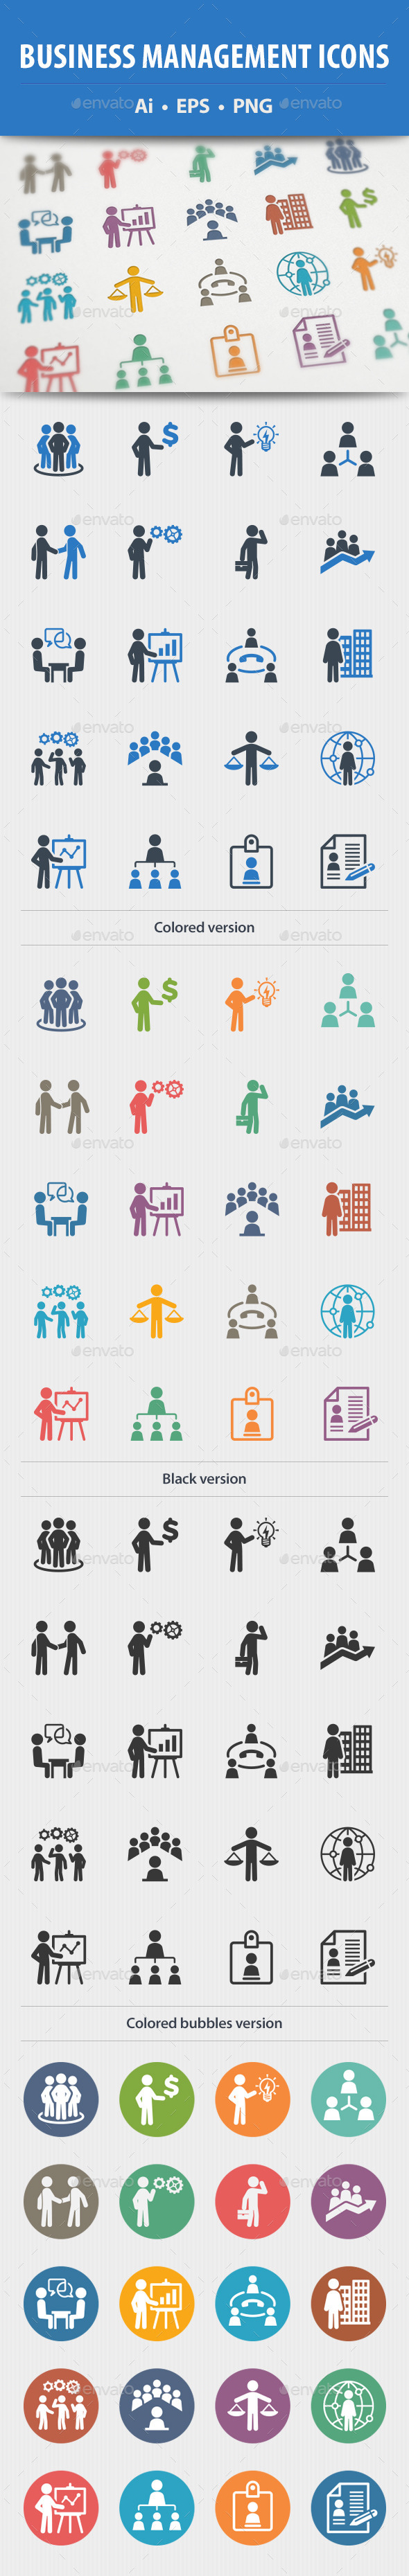 GraphicRiver Business Management Icons 9171001